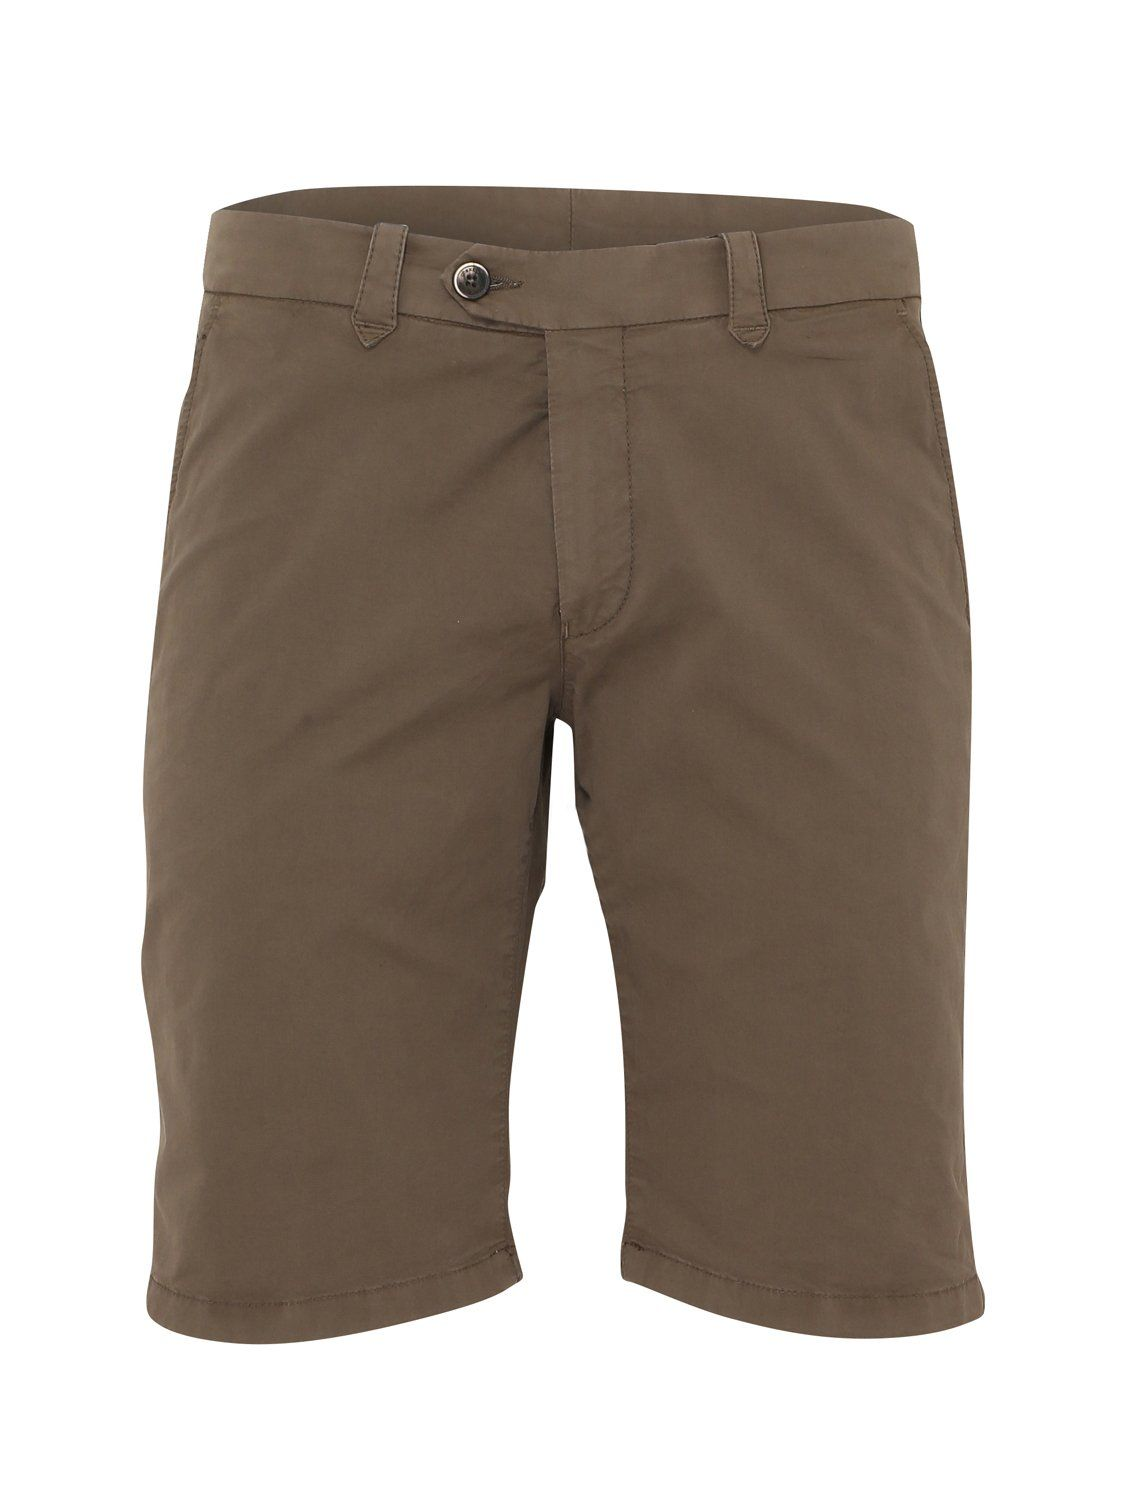 Corneliani Chino Shorts (Taupe) EU 54 / UK 38